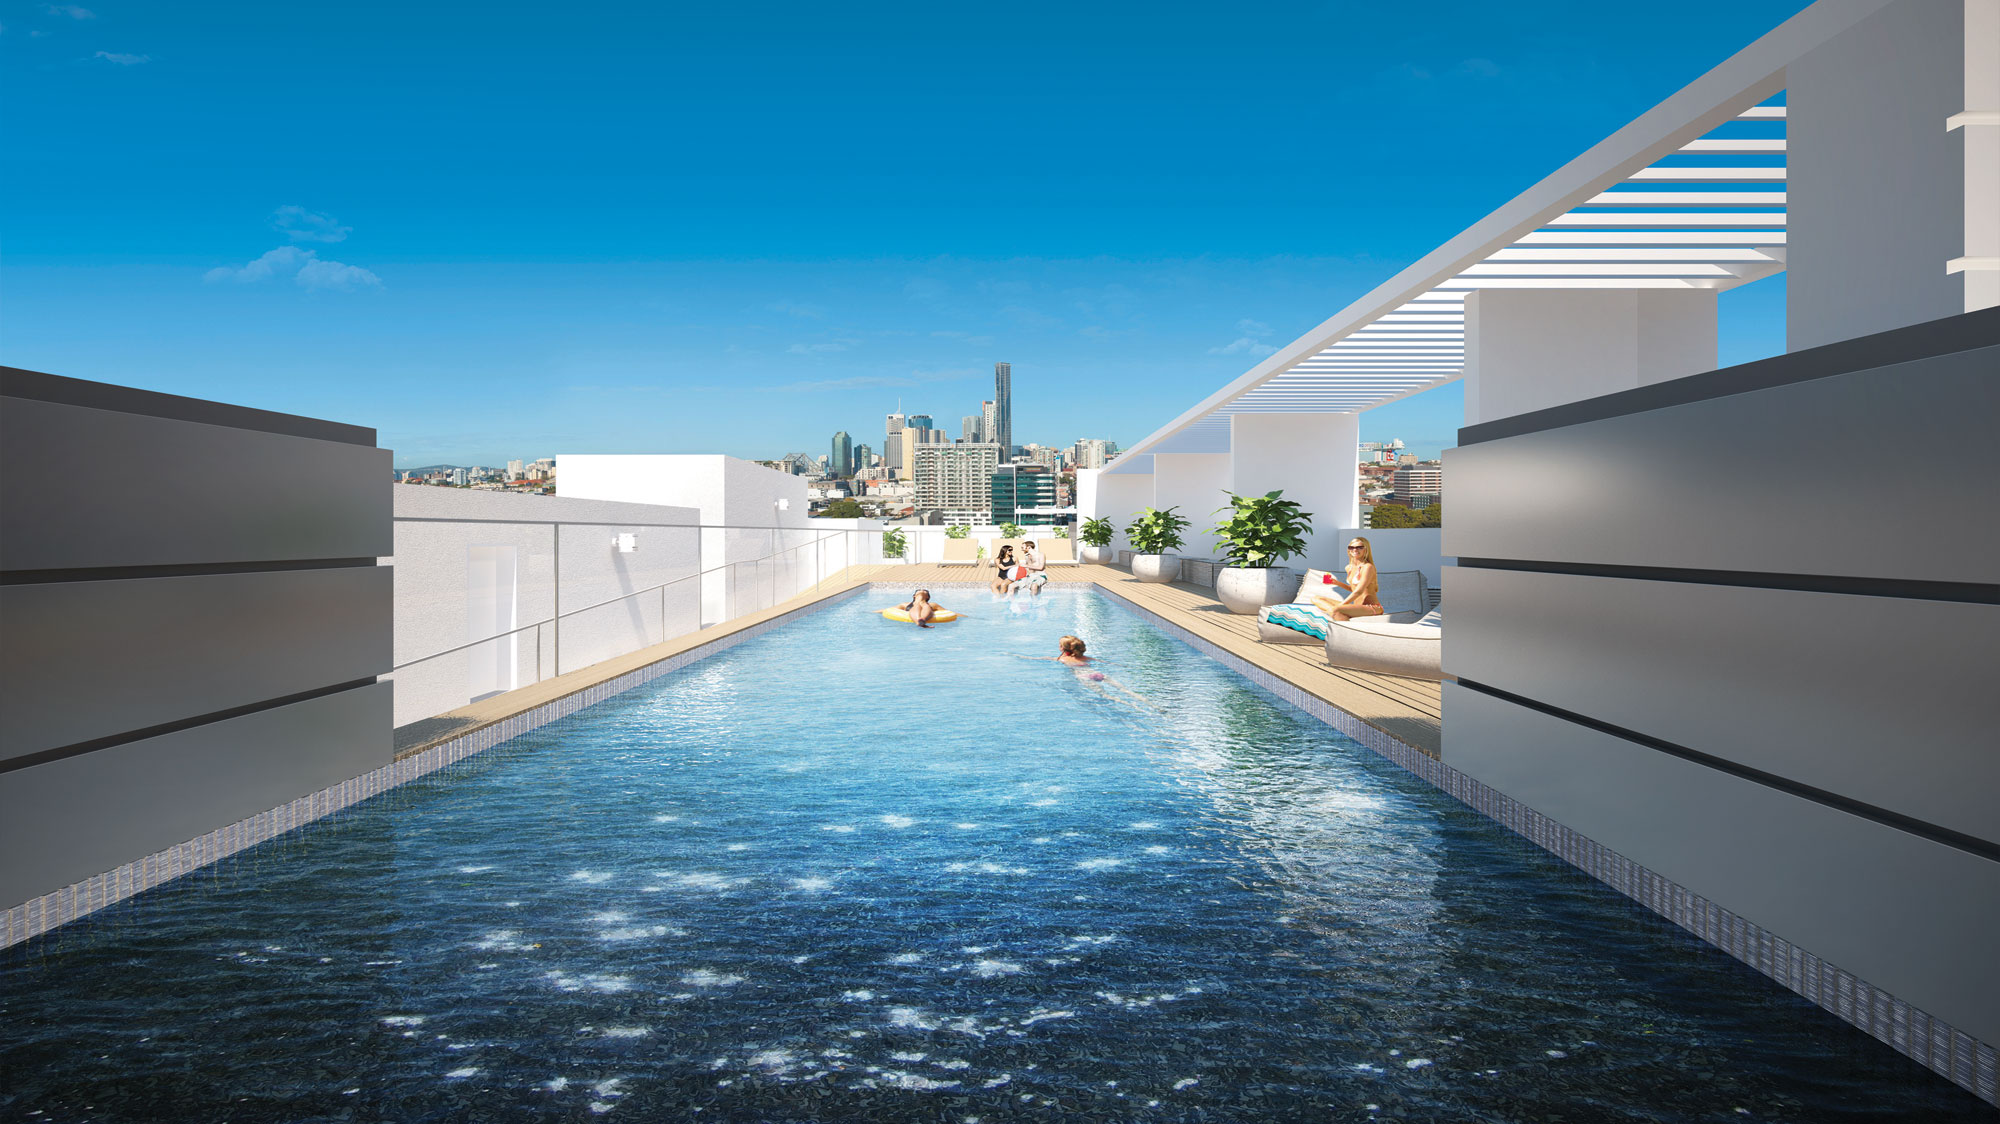 Fortitude Valley - Broadway pool